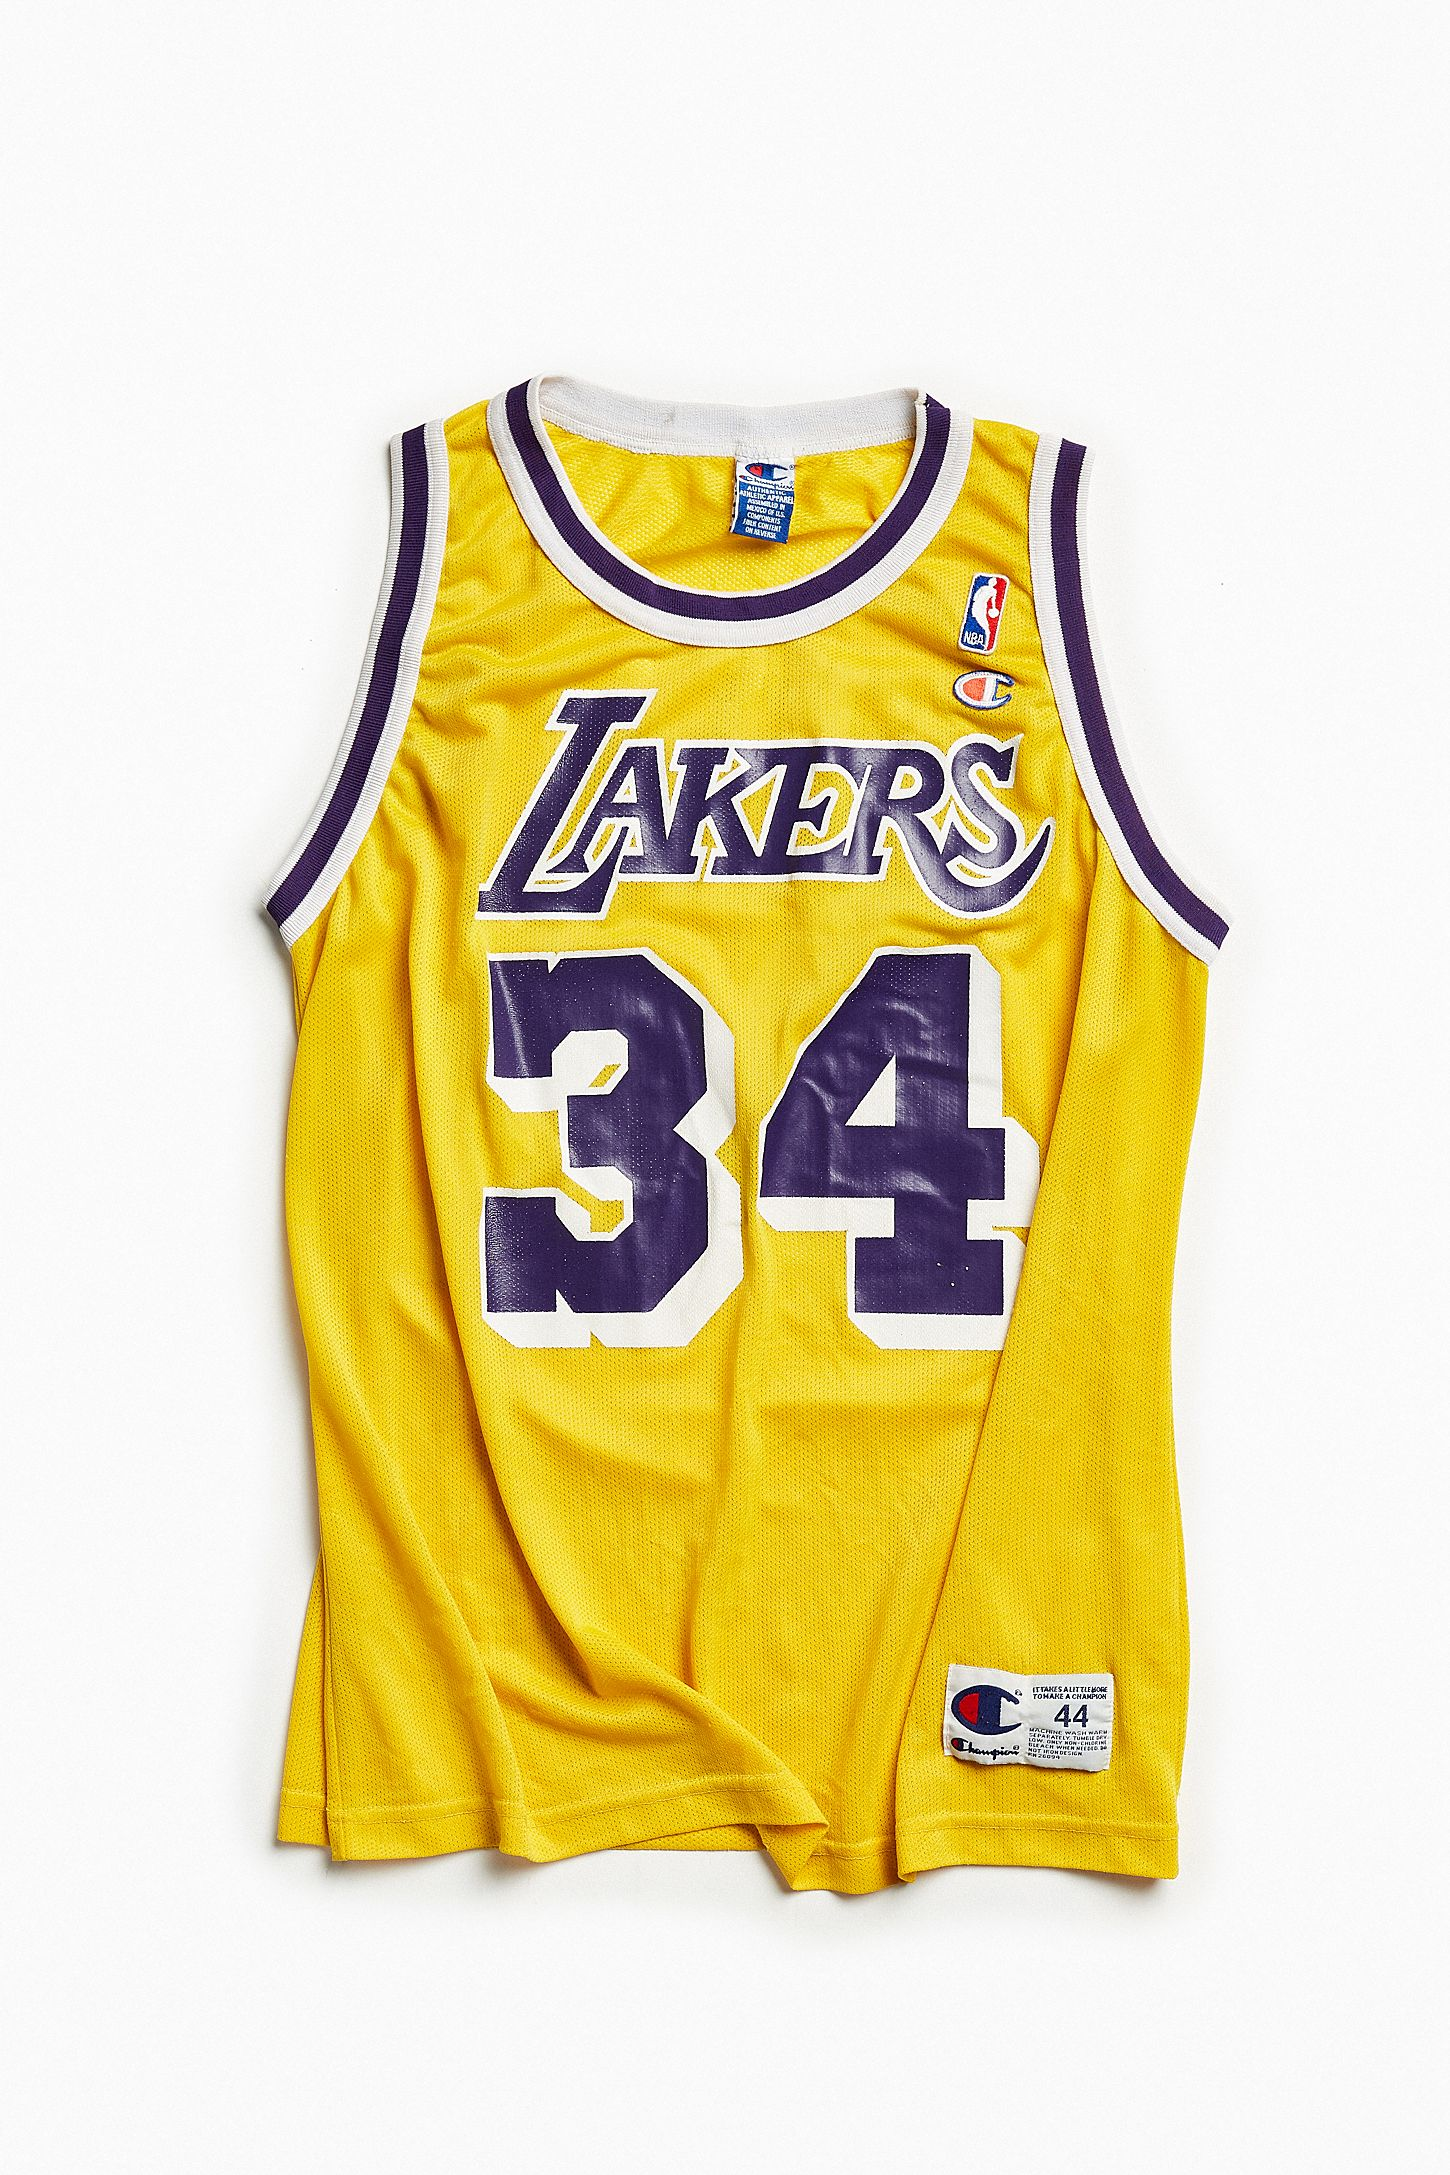 66333a0a6451 Vintage Los Angeles Lakers Shaquille O Neal Basketball Jersey. Tap image to  zoom. Hover to zoom. Double Tap to Zoom